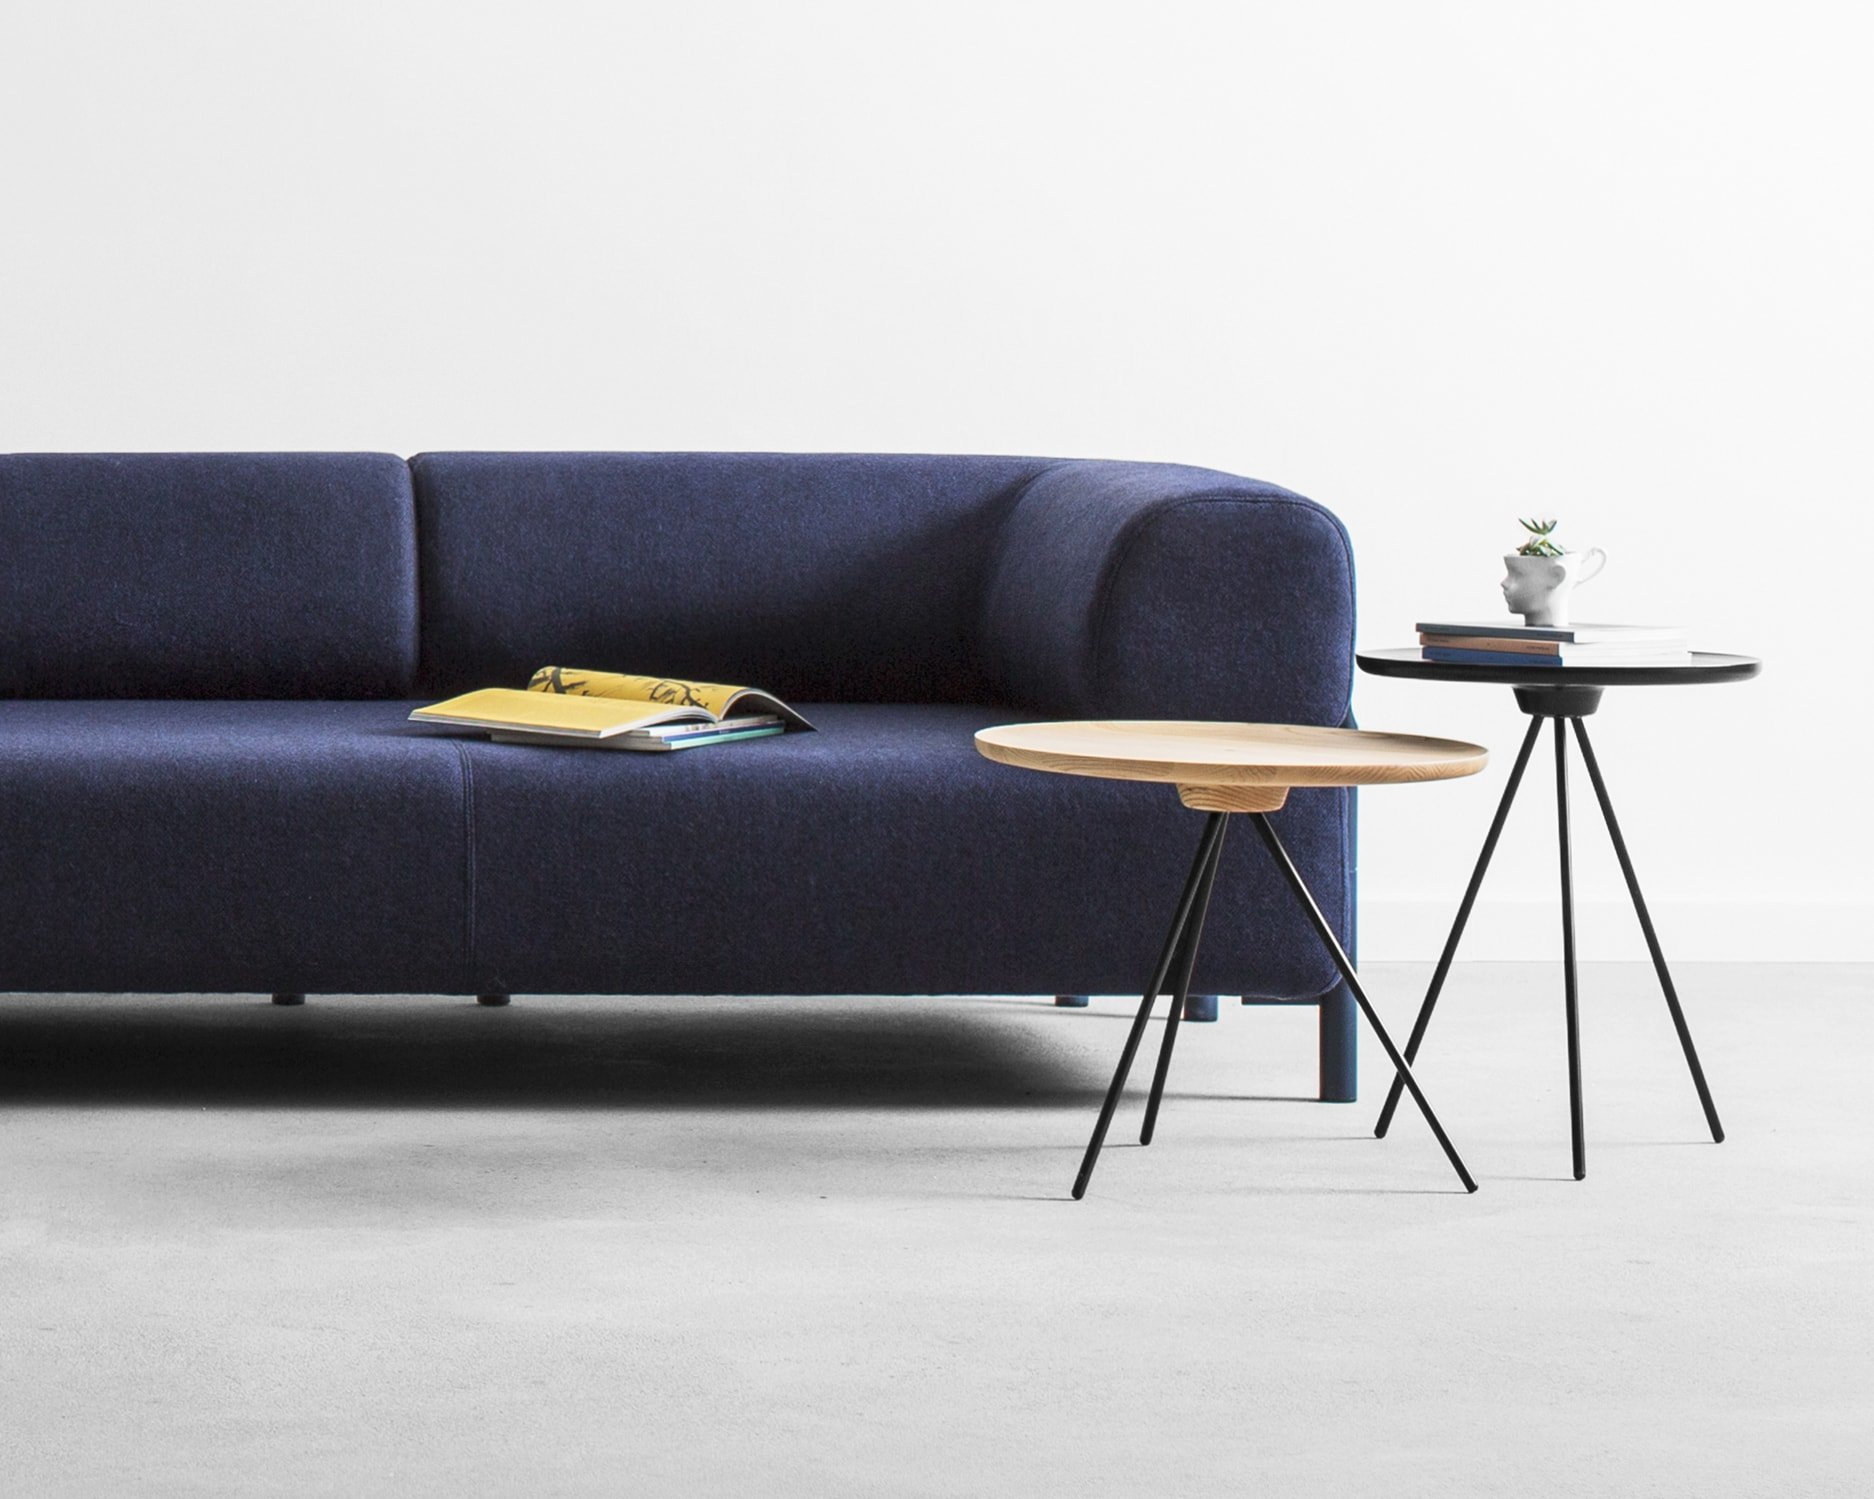 After Ikea: 12 mid-range furniture stores that won't break the bank